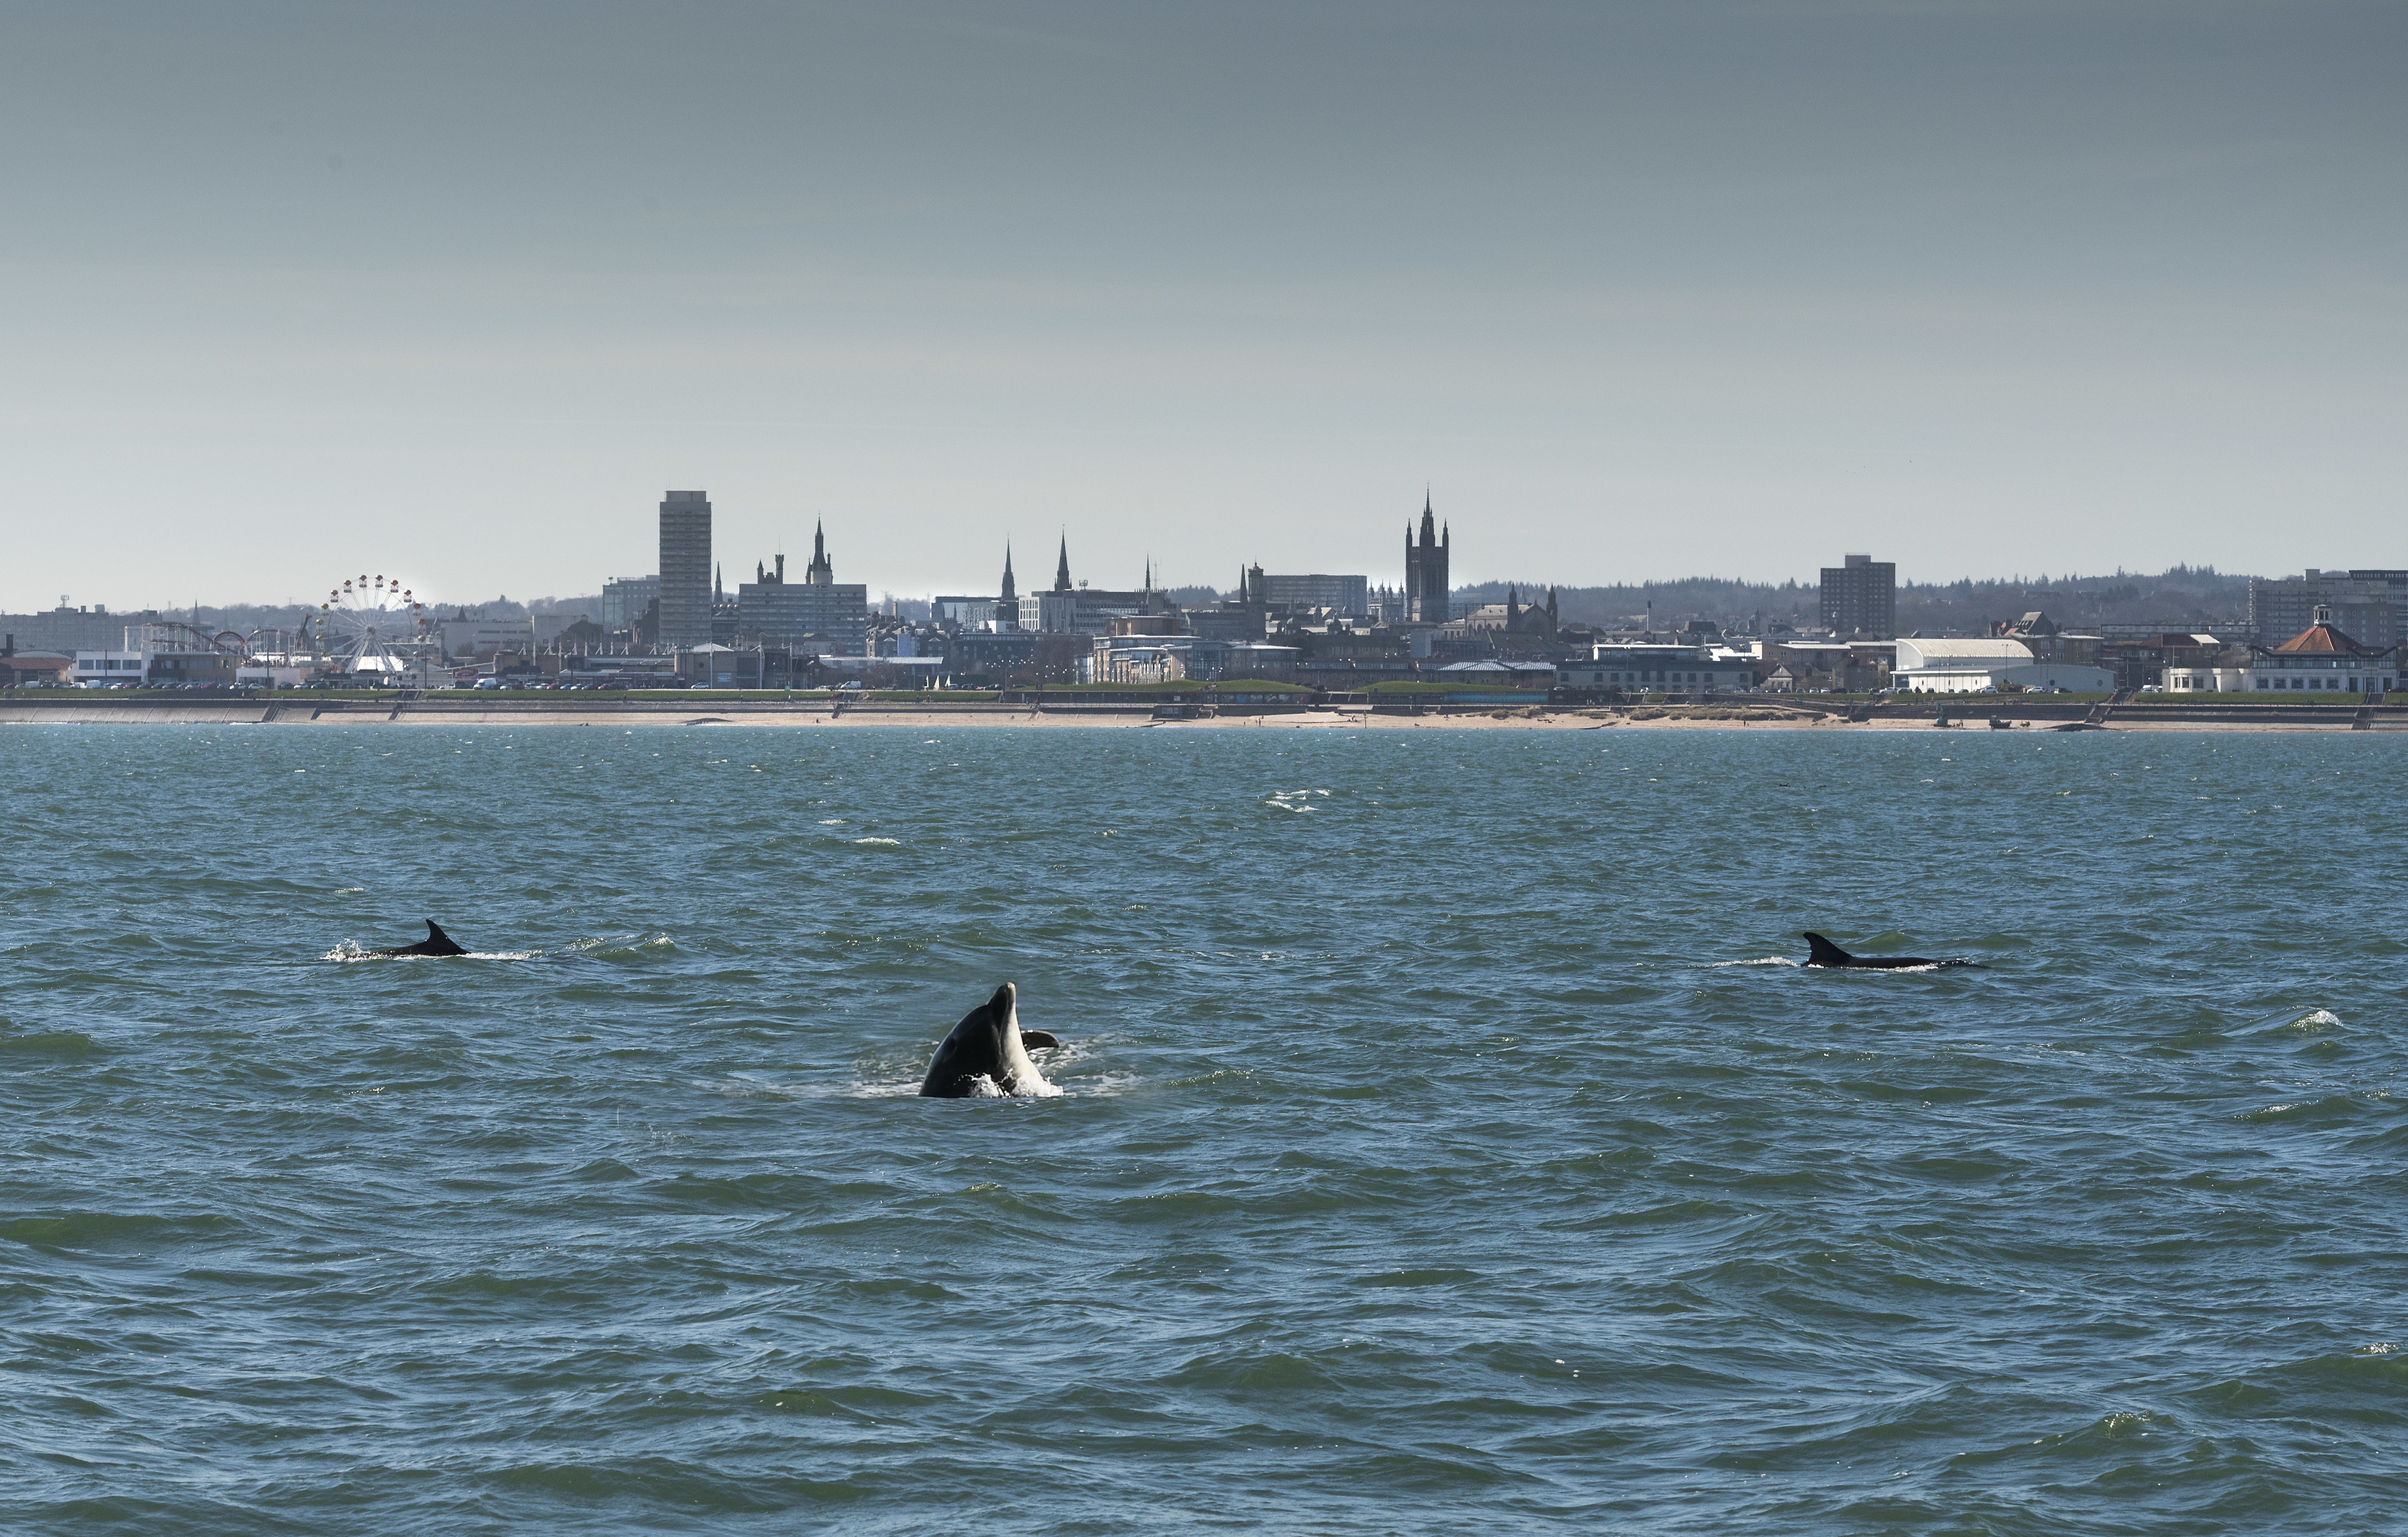 Aberdeen is quickly becoming renowned as a world-class destination for dolphin watching